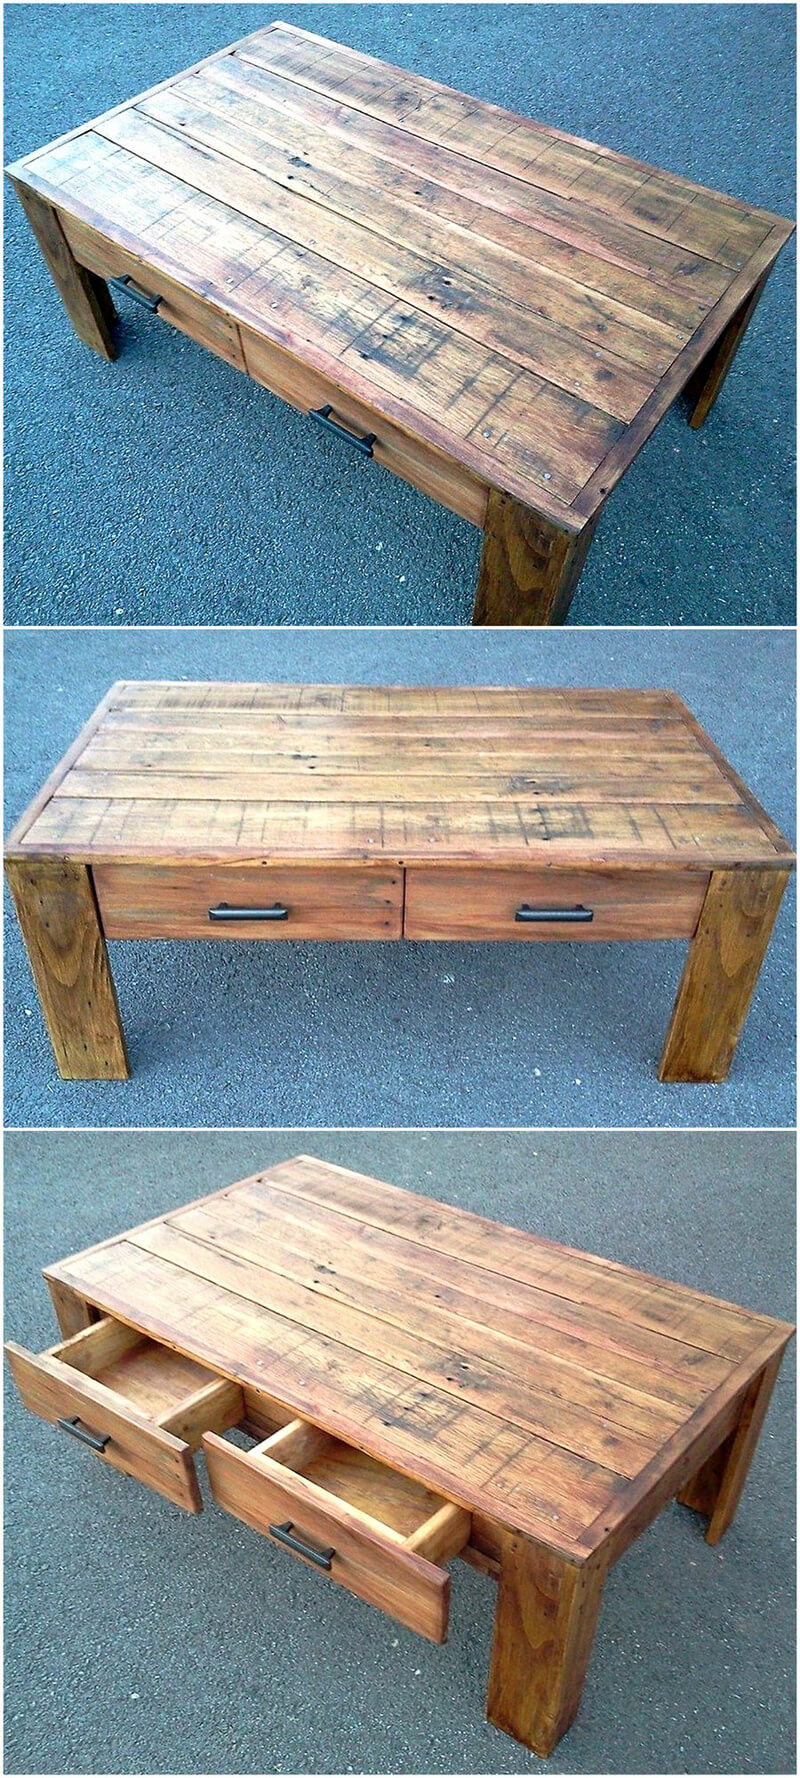 reused pallets table idea